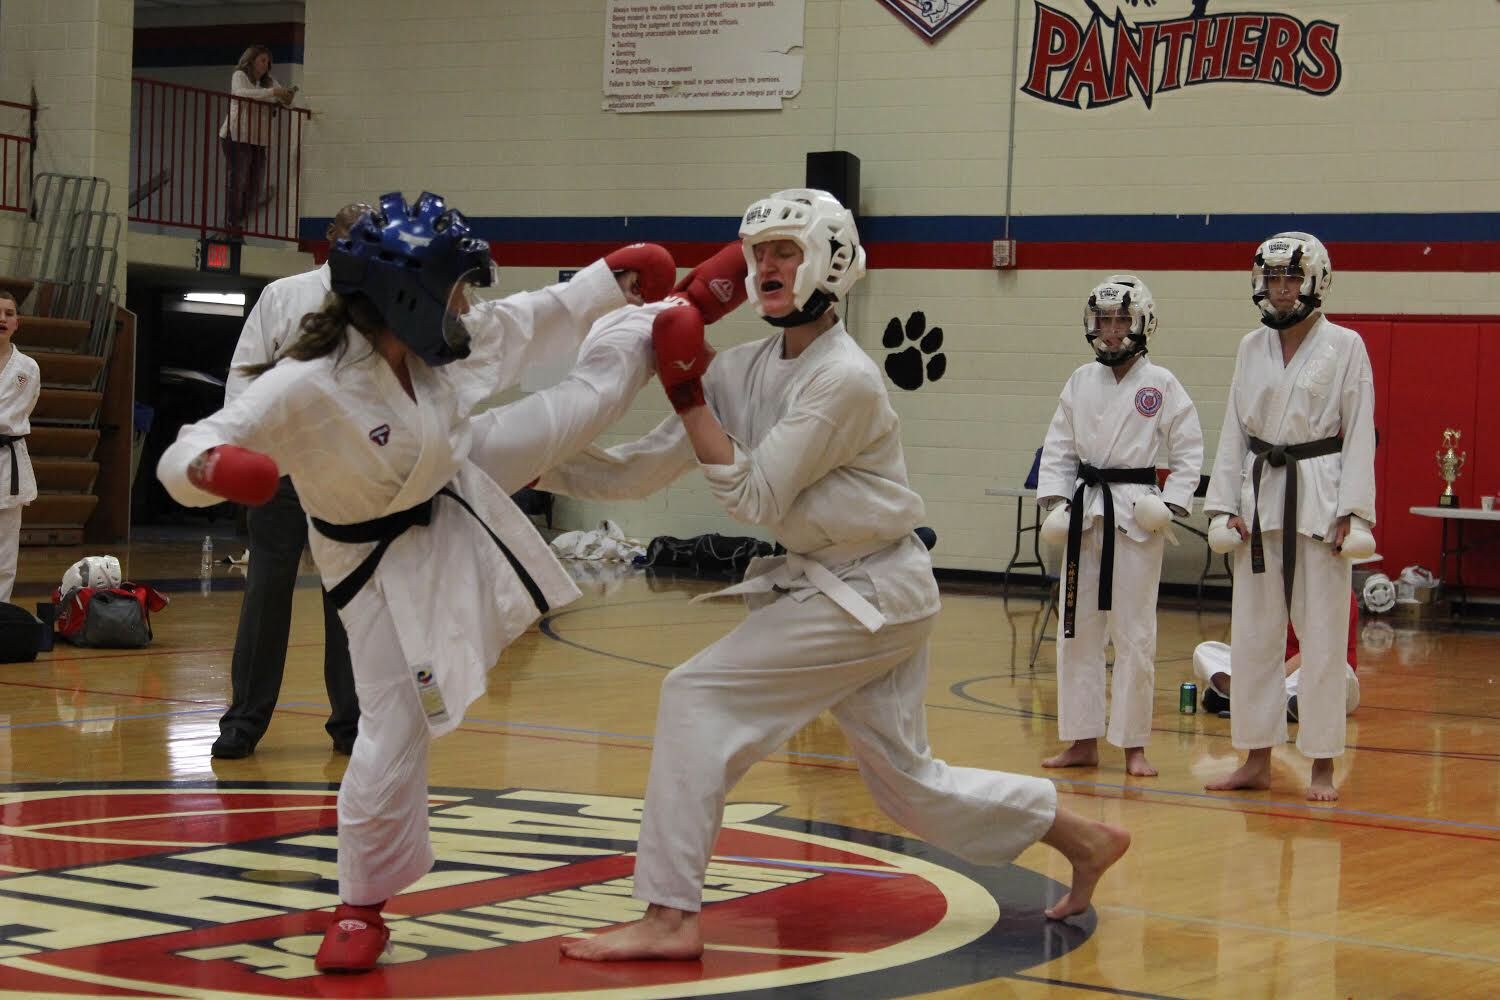 Davidson practices the karate style Shotokan, hoping to make it to the 2020 Olympics in Tokyo